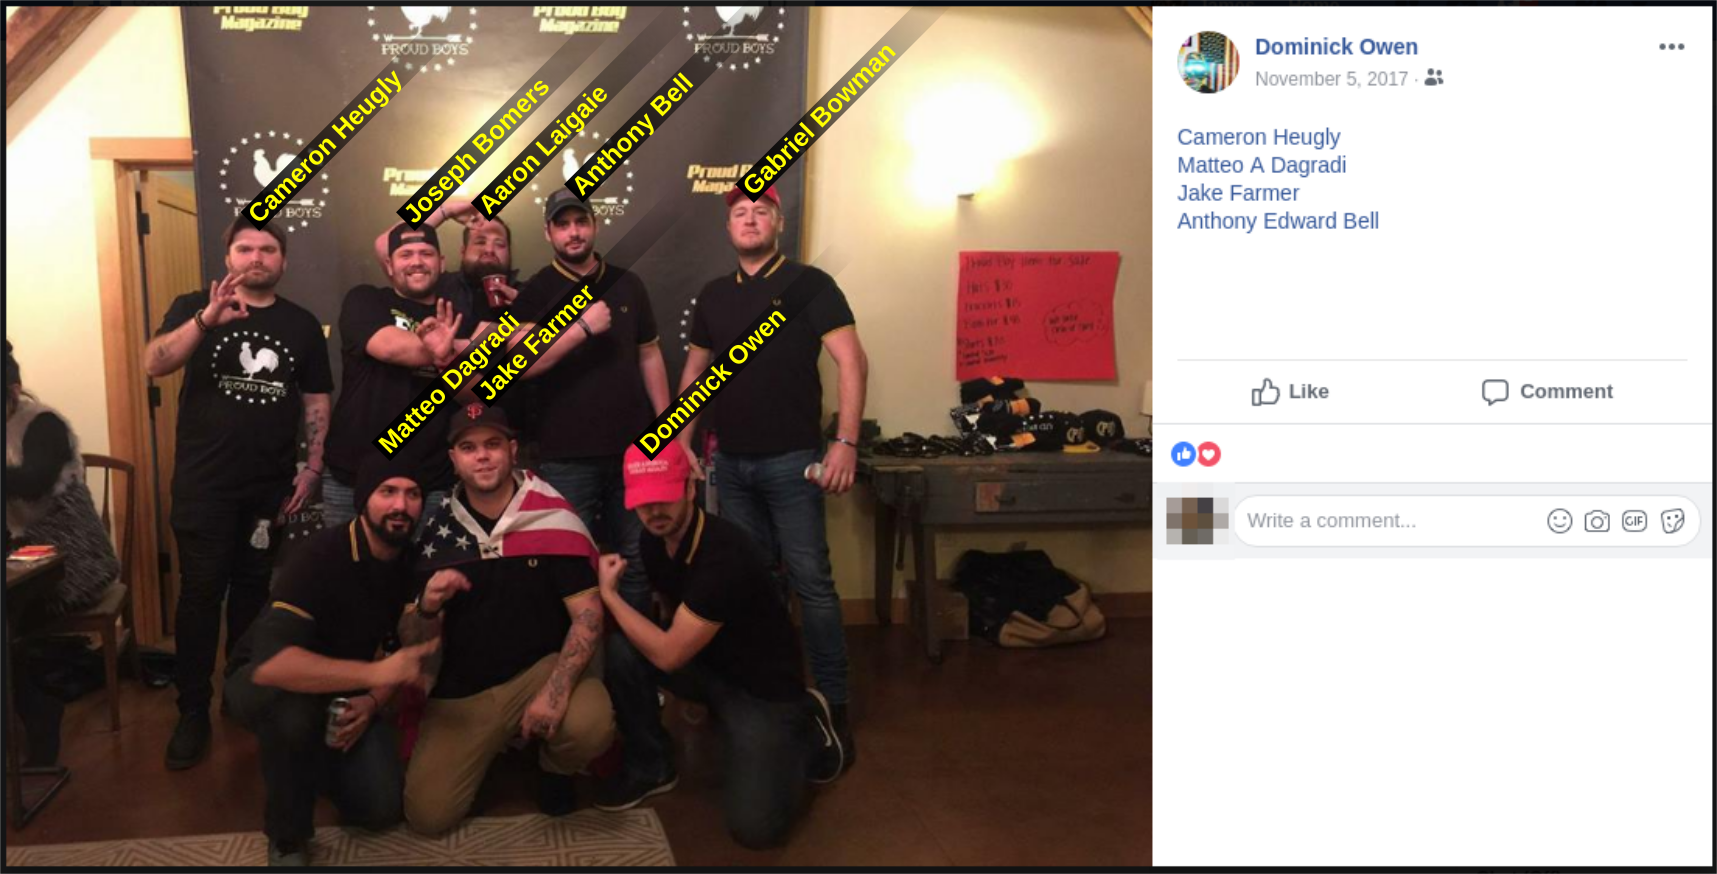 Dominick Owen poses with fellow members of the Proud Boys hate group